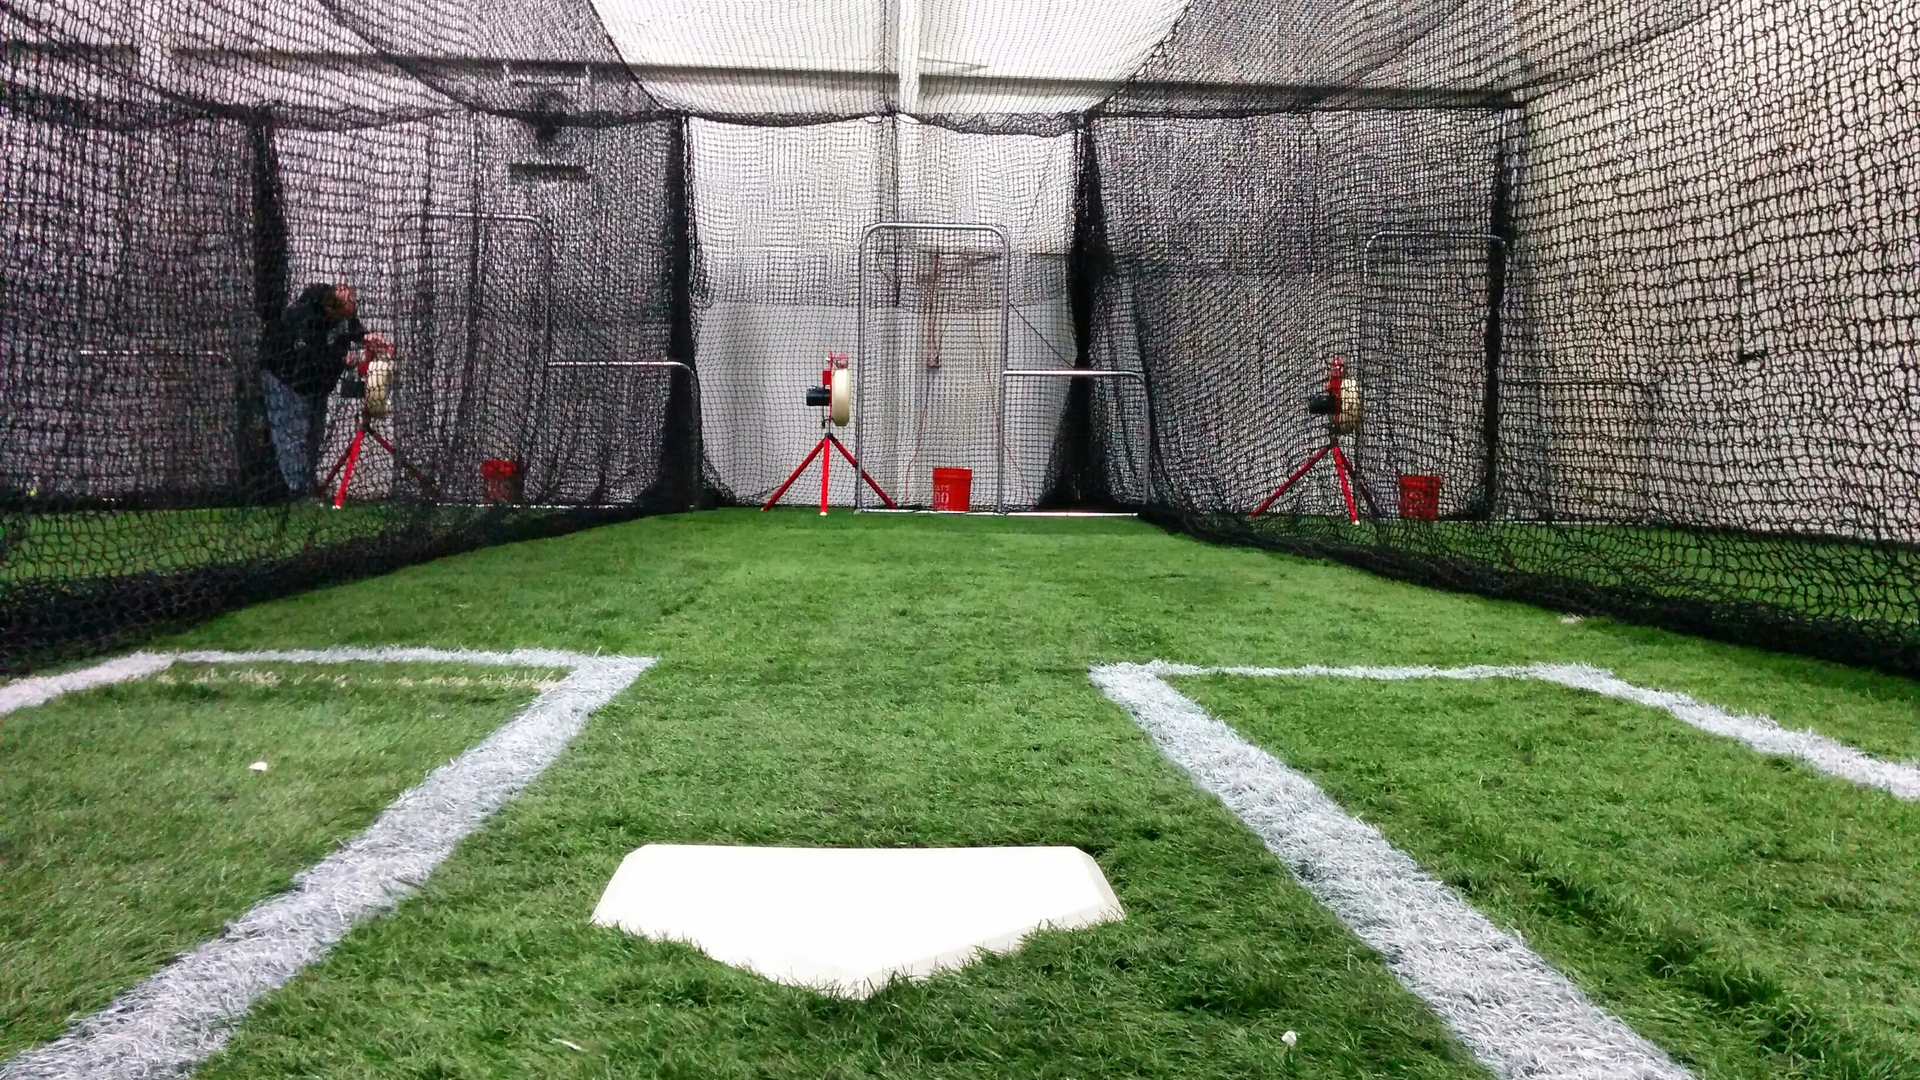 Batter Up Training Center - Backyard batter